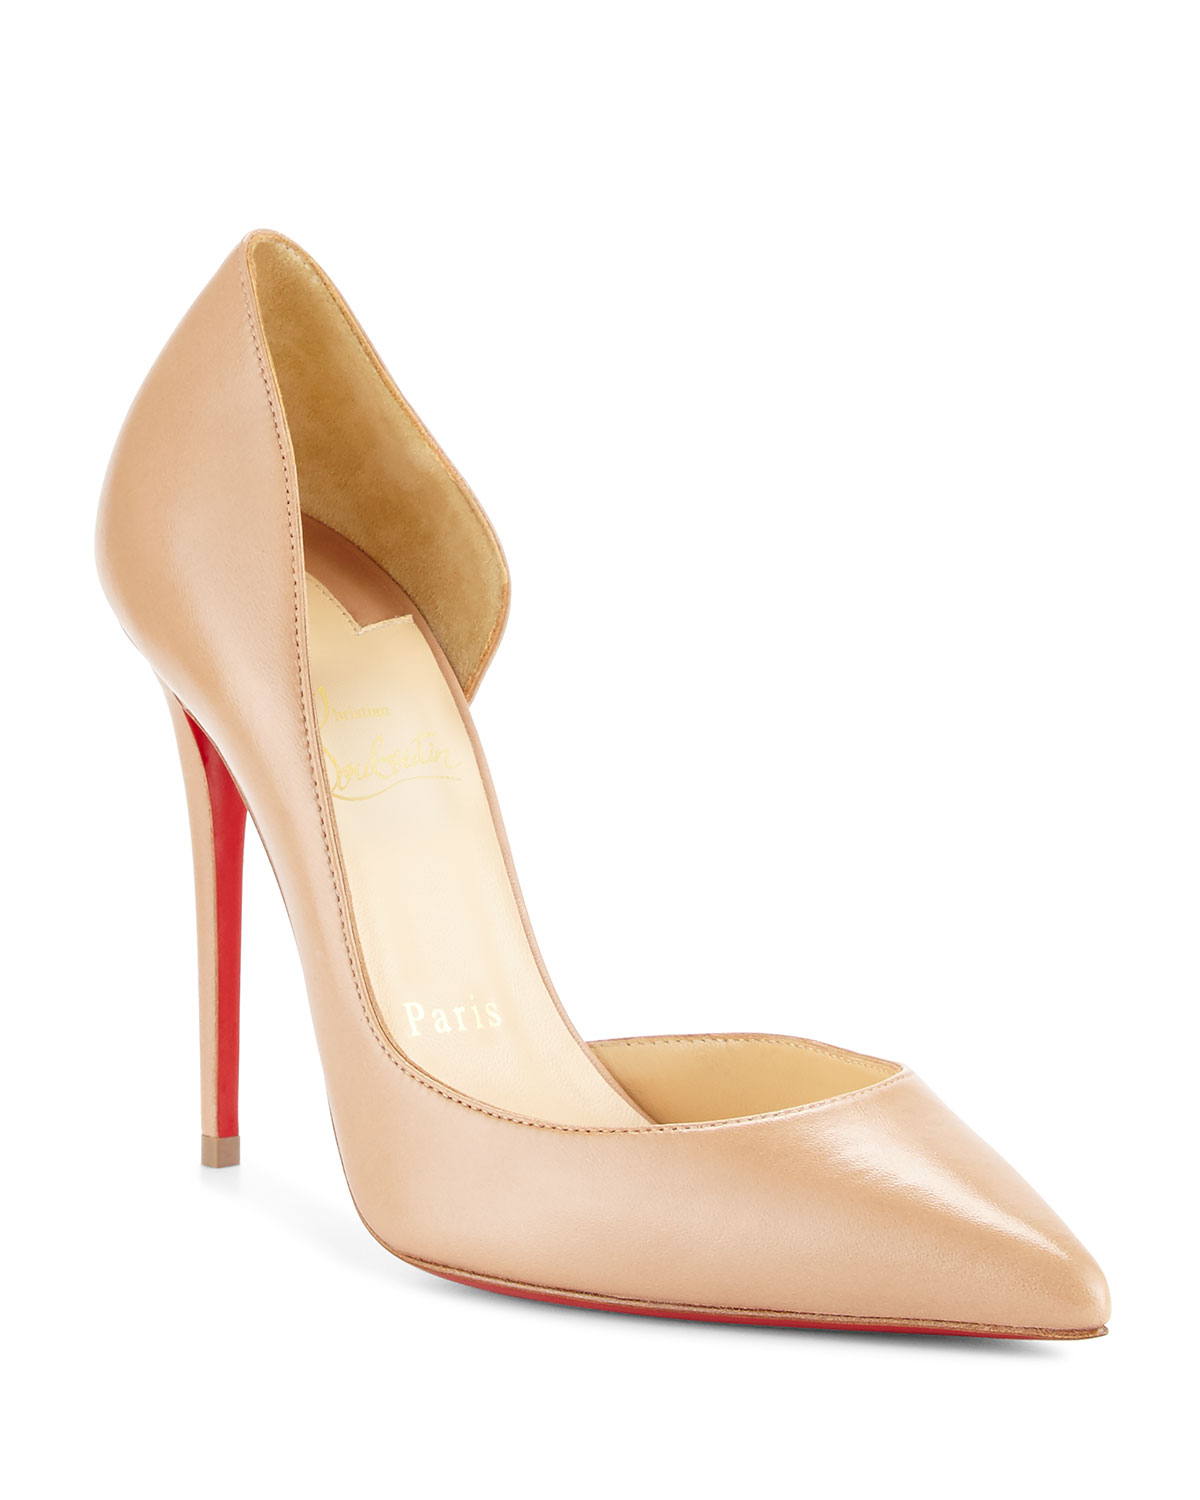 Iriza Half D Orsay 100mm Red Sole Pump